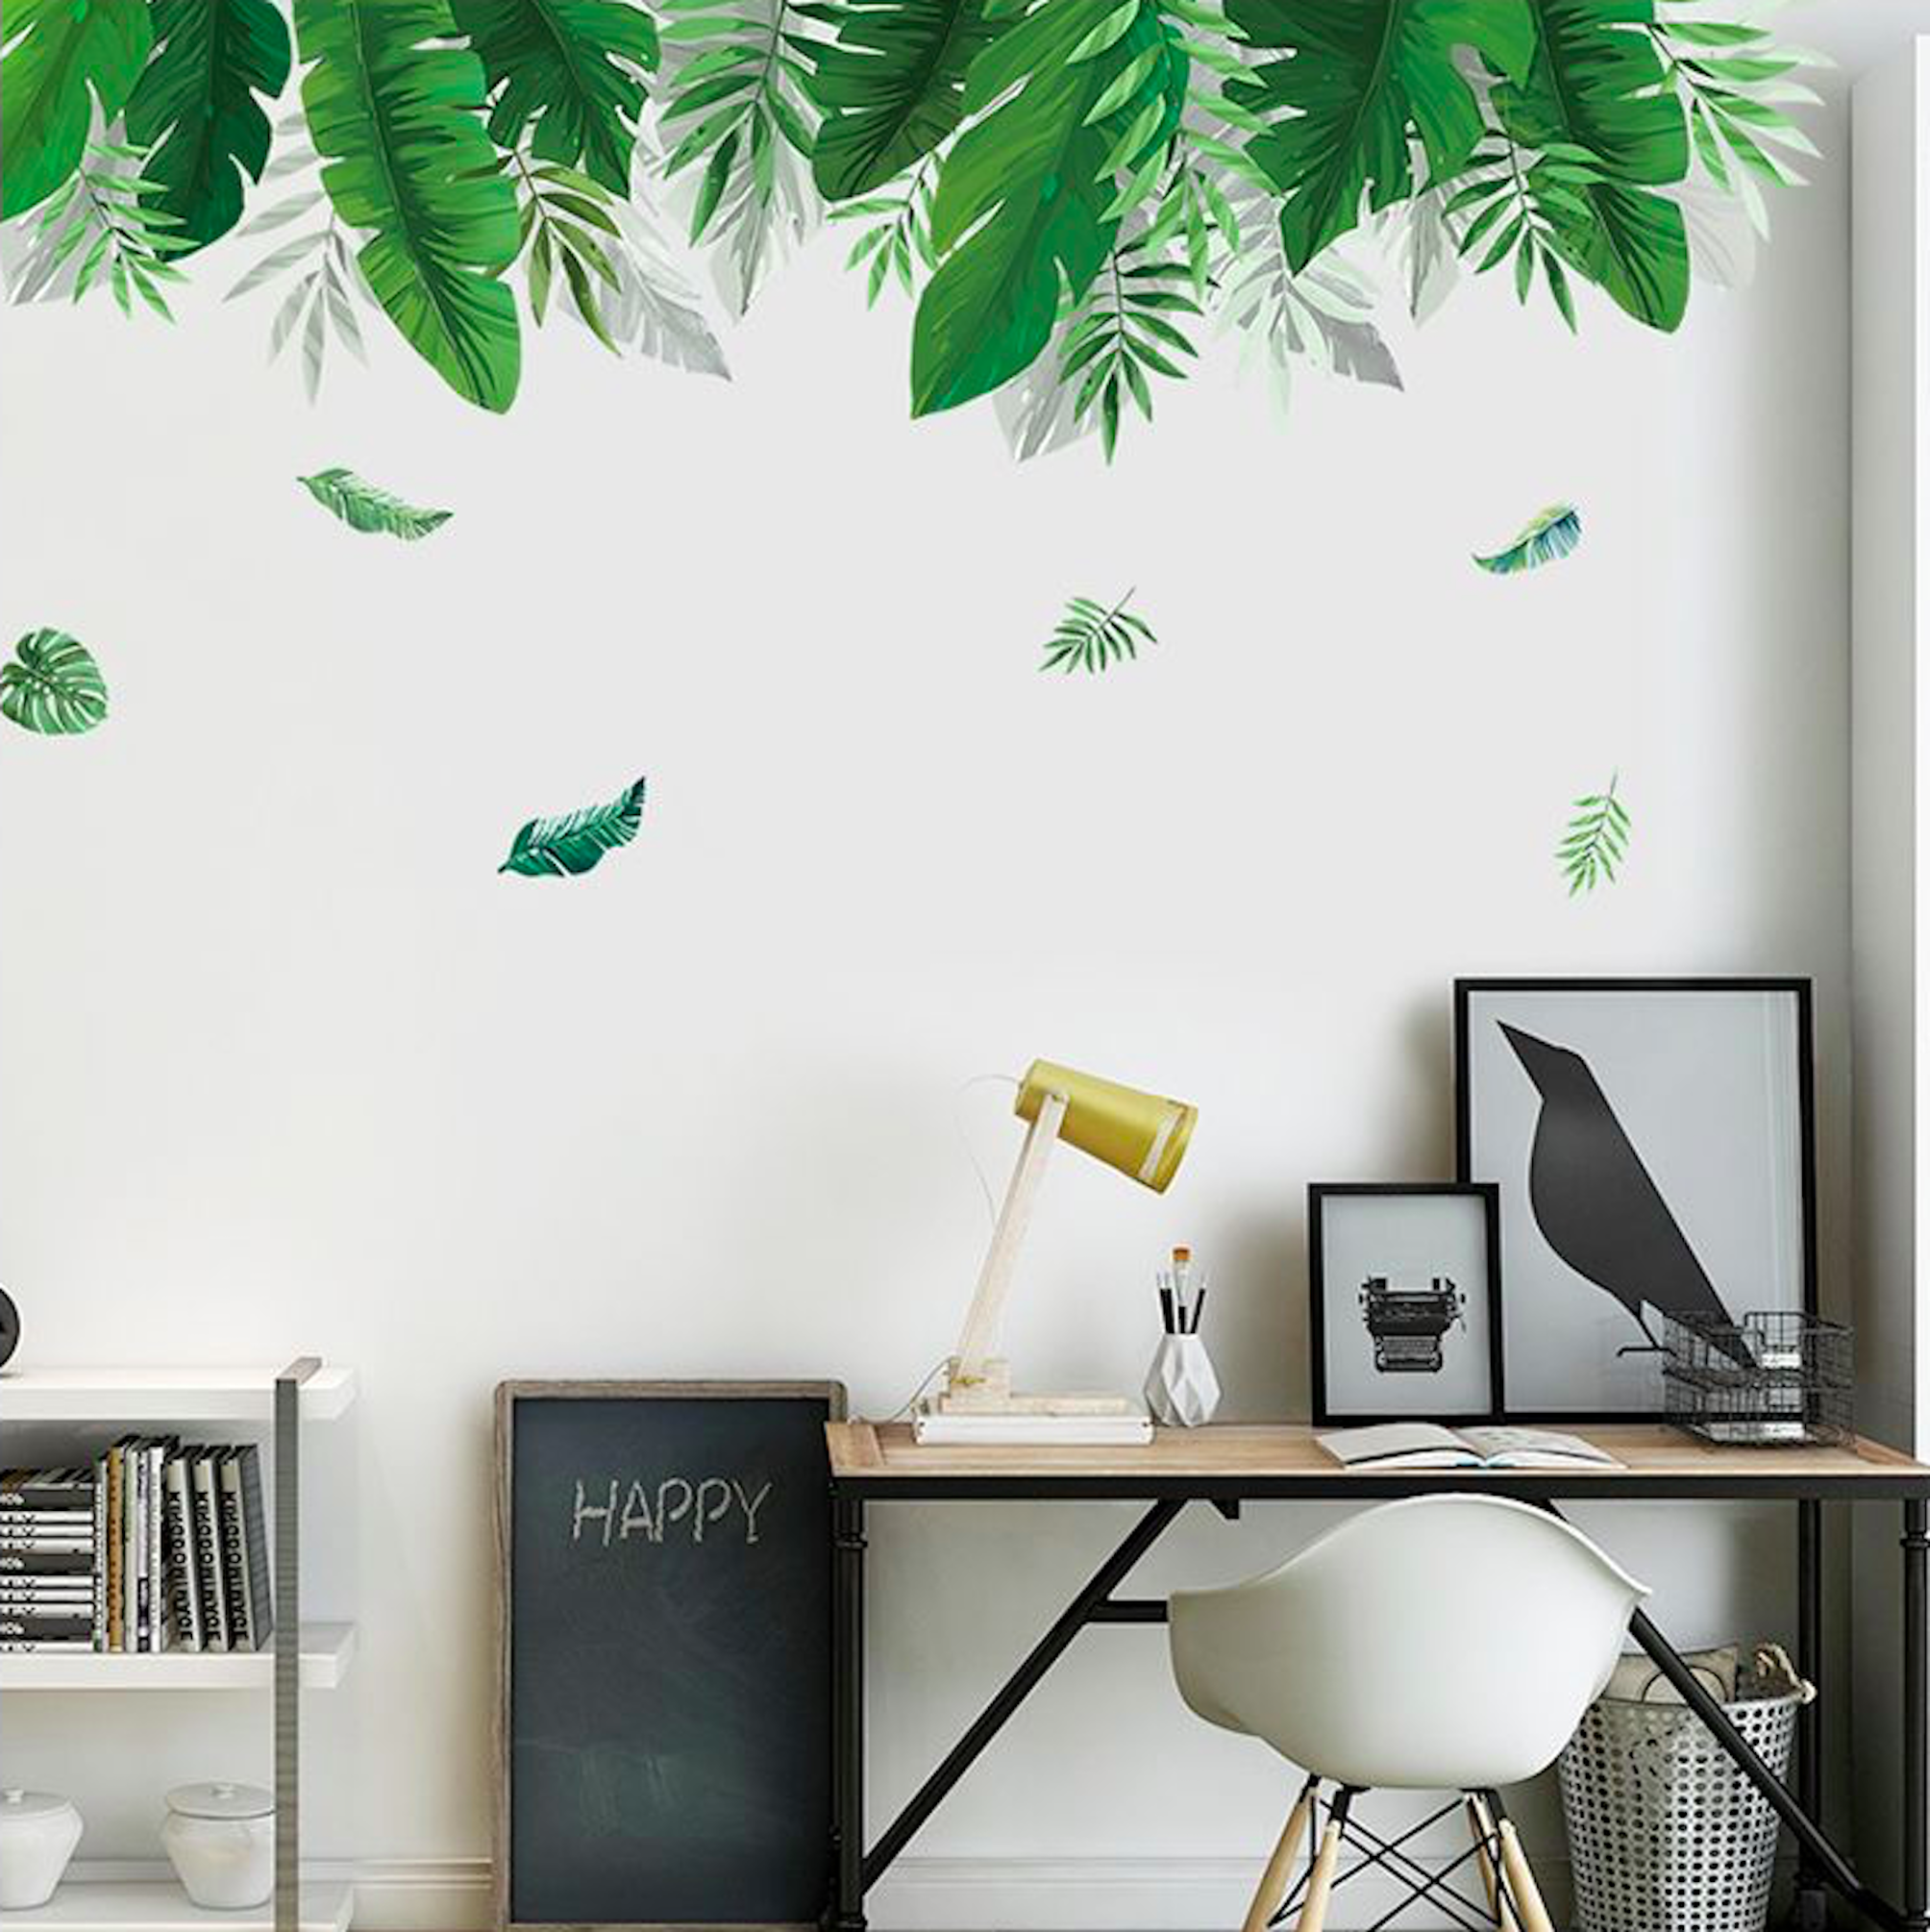 Large Green Leaves Wall Decal Tropical Wallpaper Office Wall Decal Greenery Botanical Nursery Nature Living Room Wall Decal In 2020 Wall Stickers Living Room Living Room Decals Nursery Wall Decor #wall #art #decals #for #living #room